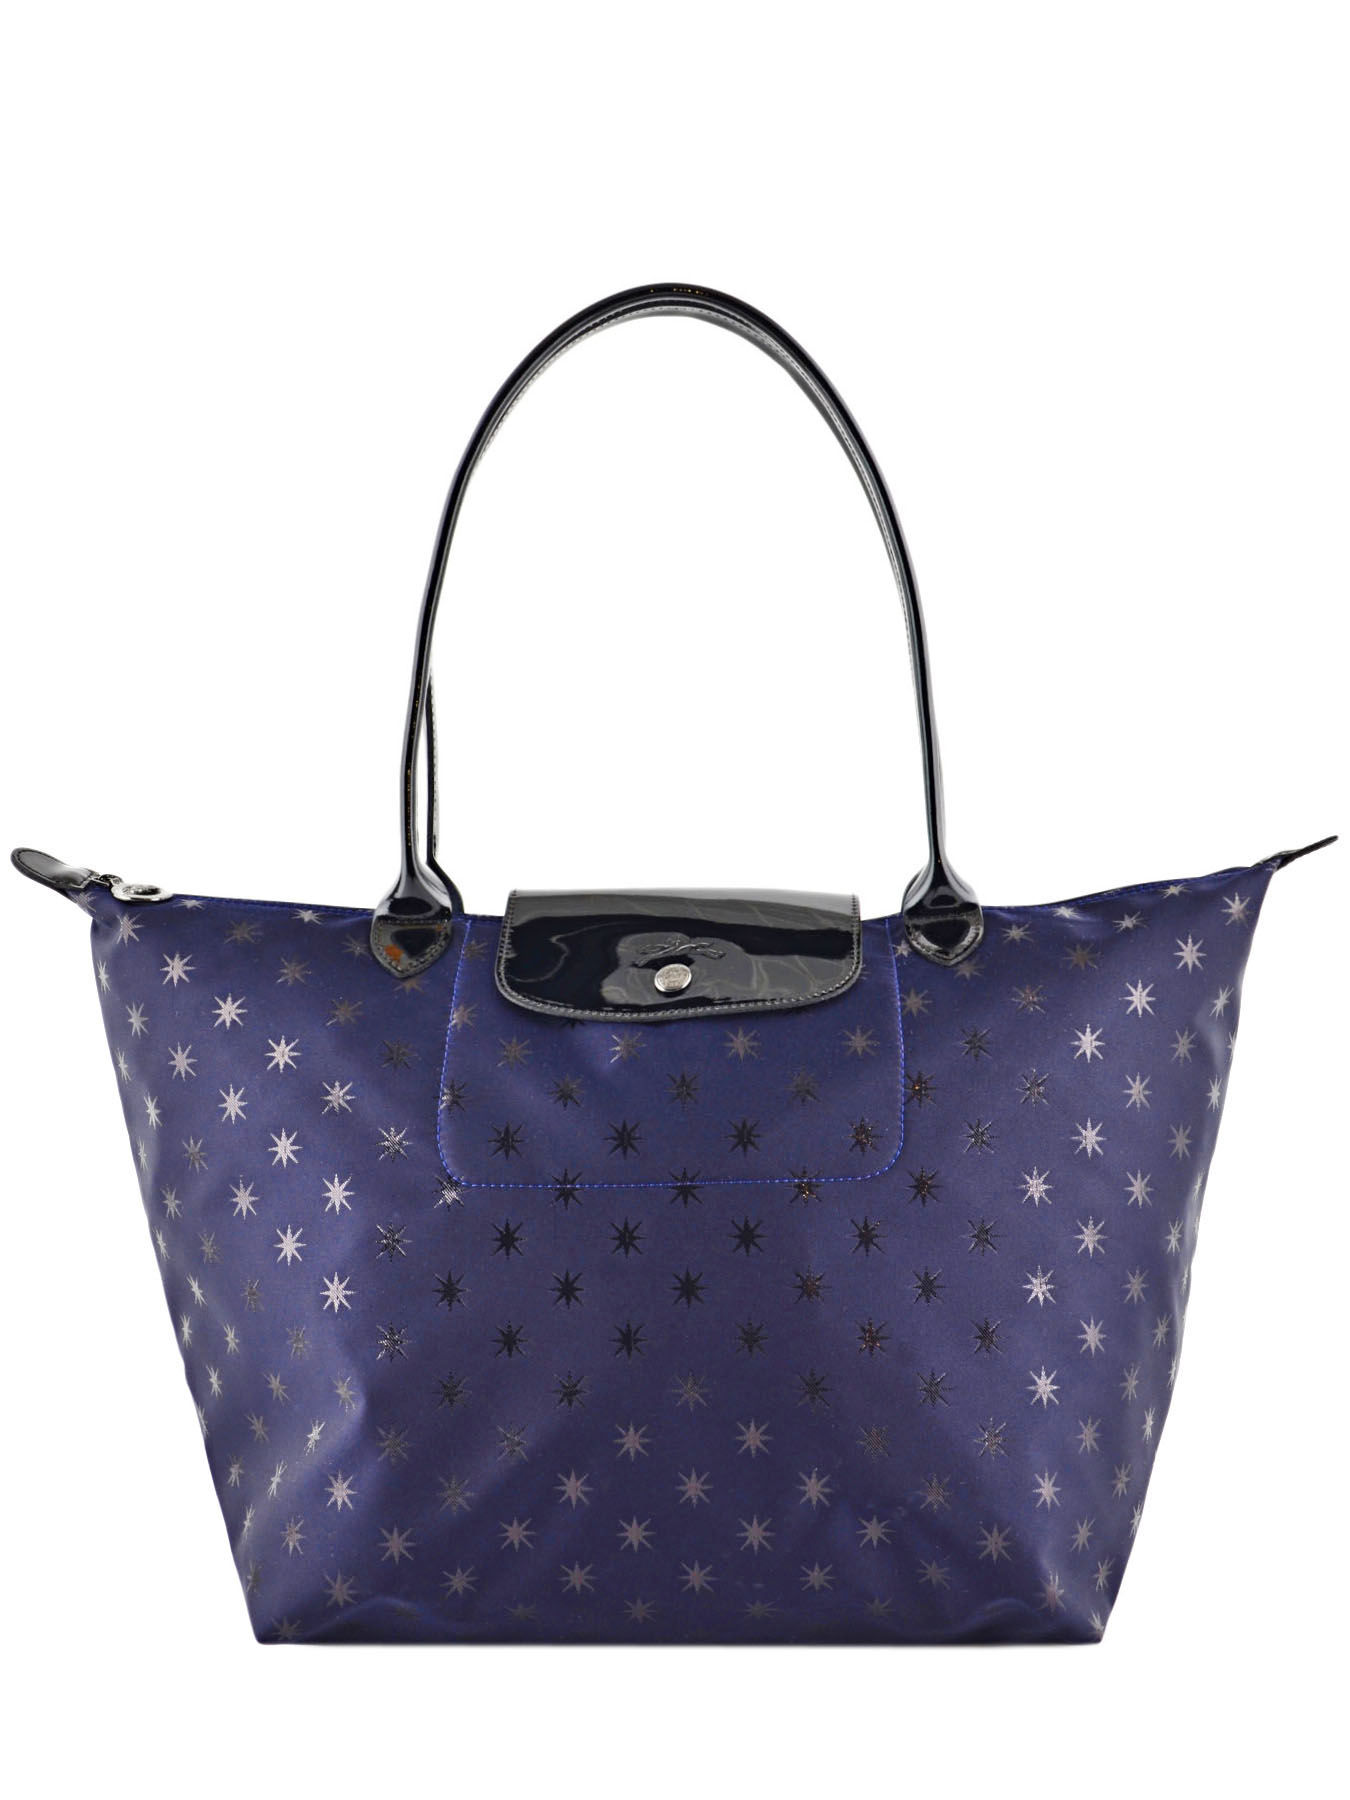 Longchamp Messenger bag Blue